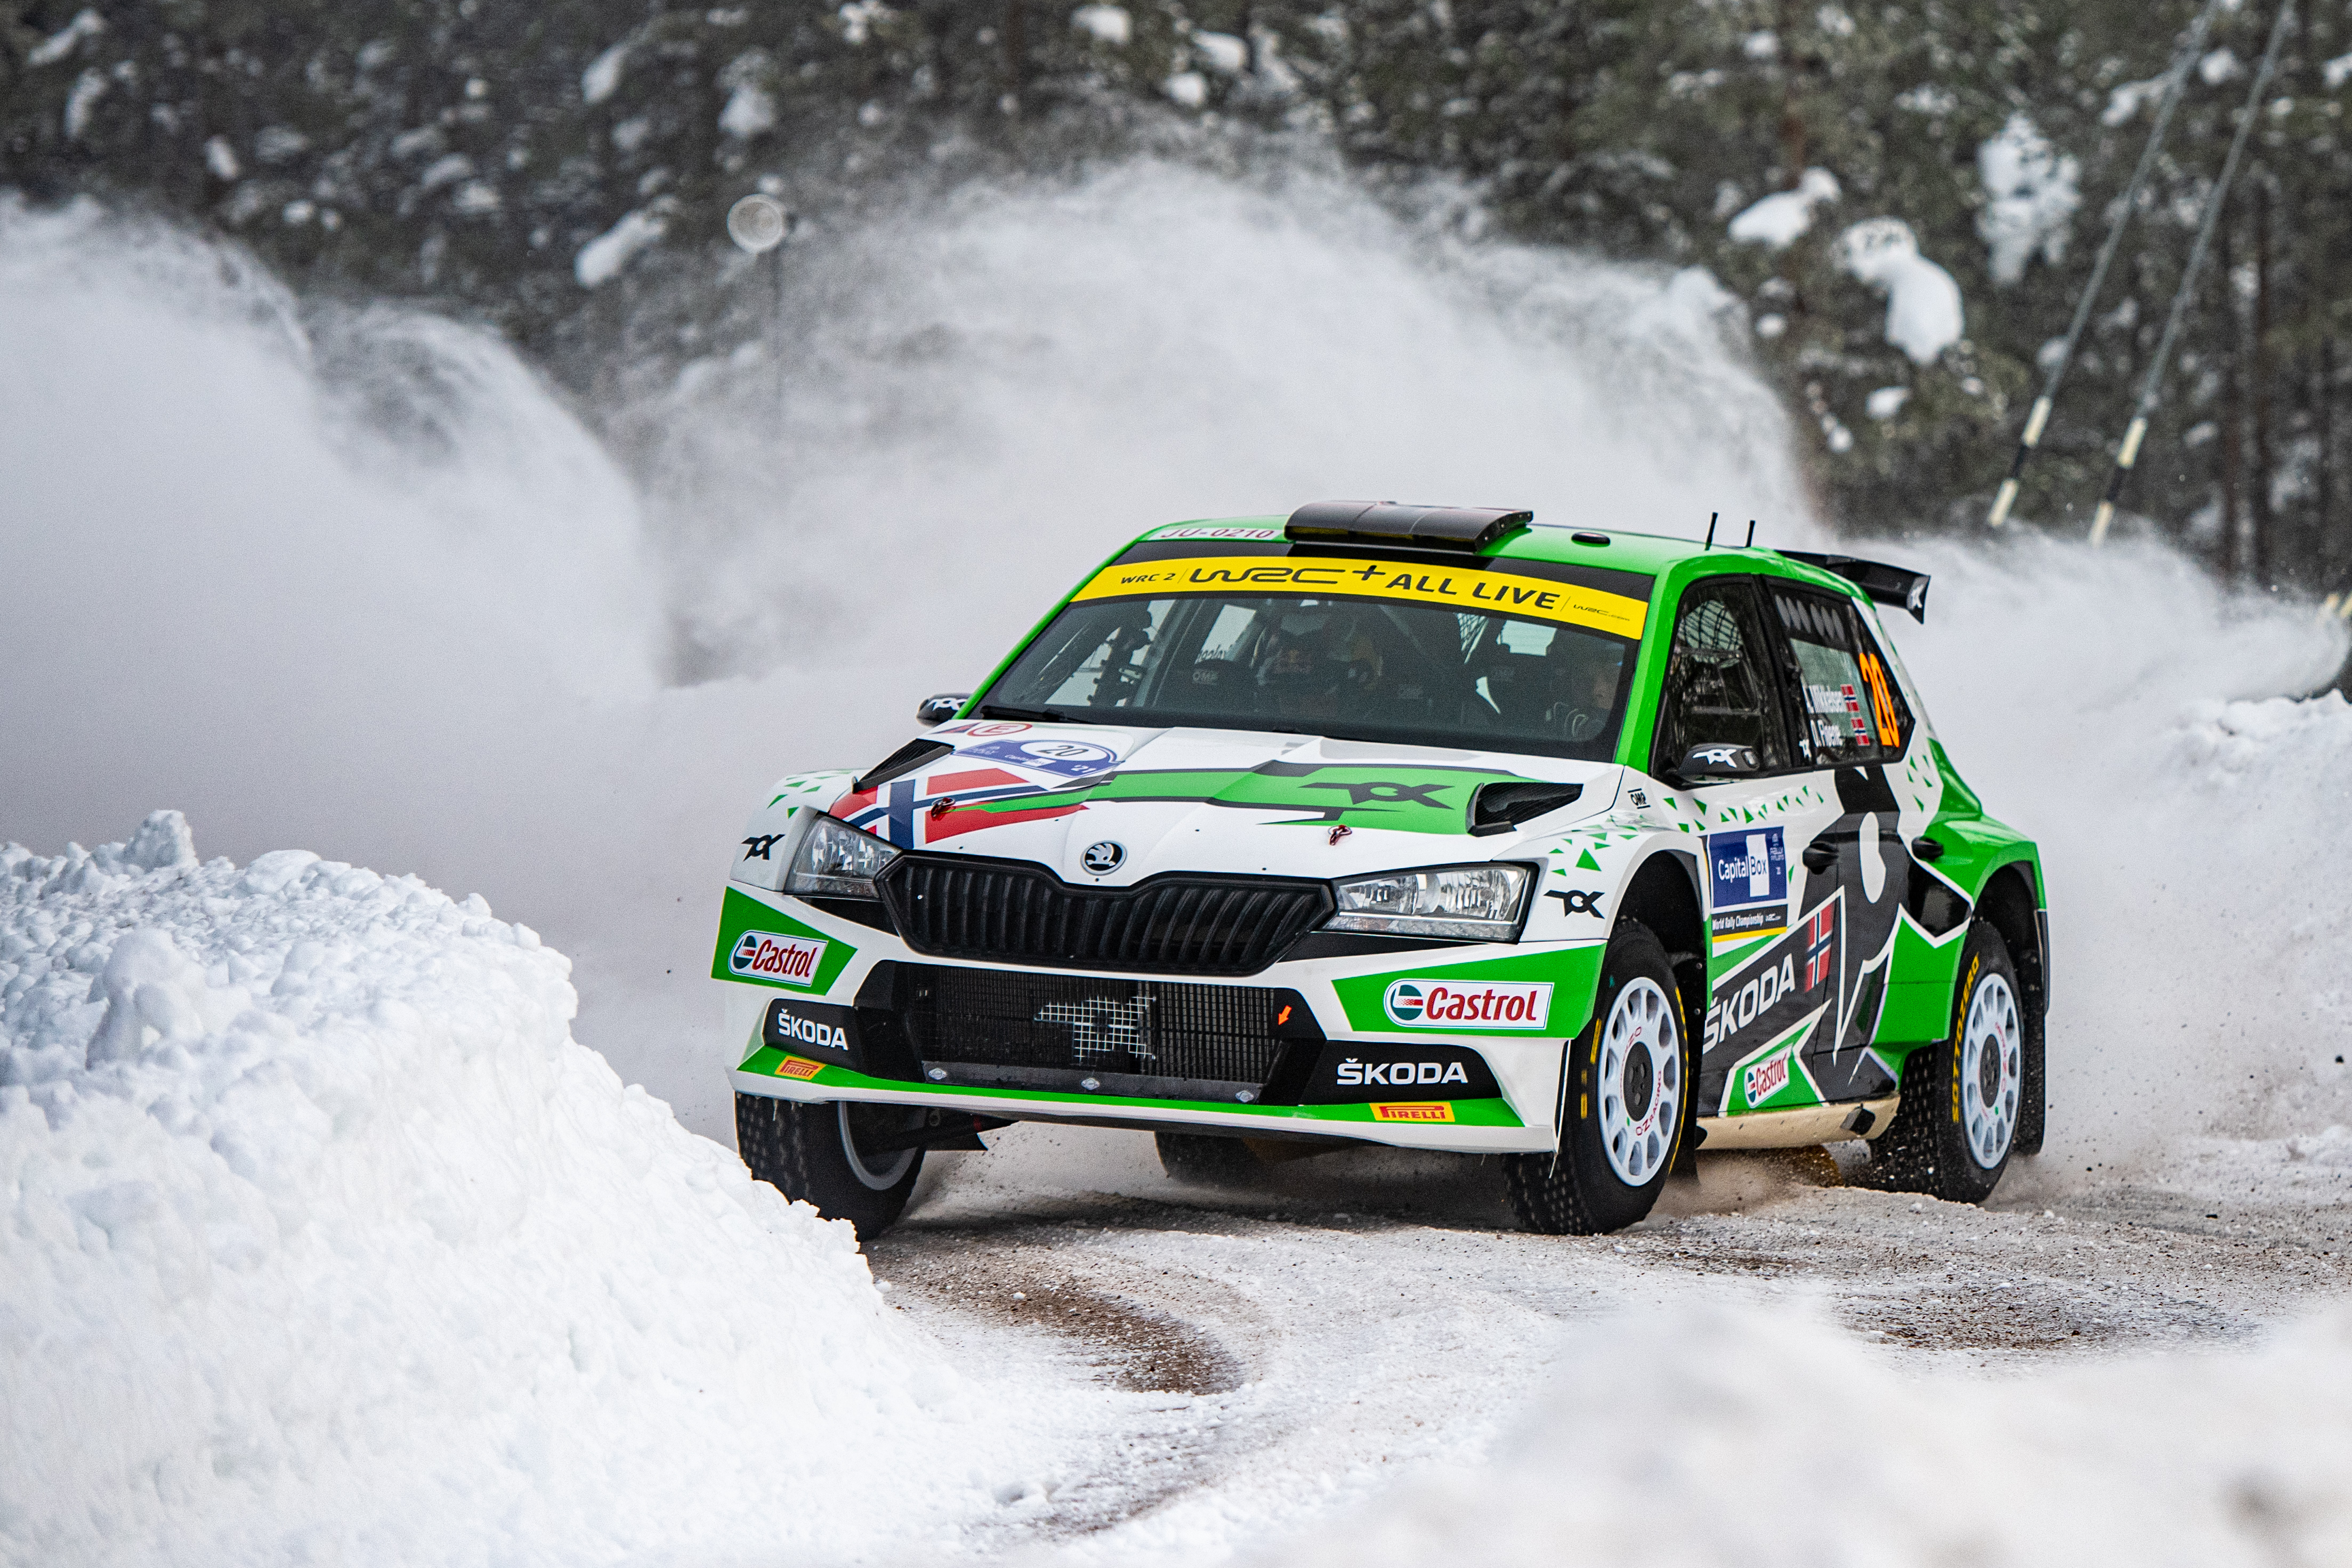 Arctic Rally Finland: SKODA Motorsport supported Andreas Mikkelsen finishes Friday leg third in WRC2 - Image 3